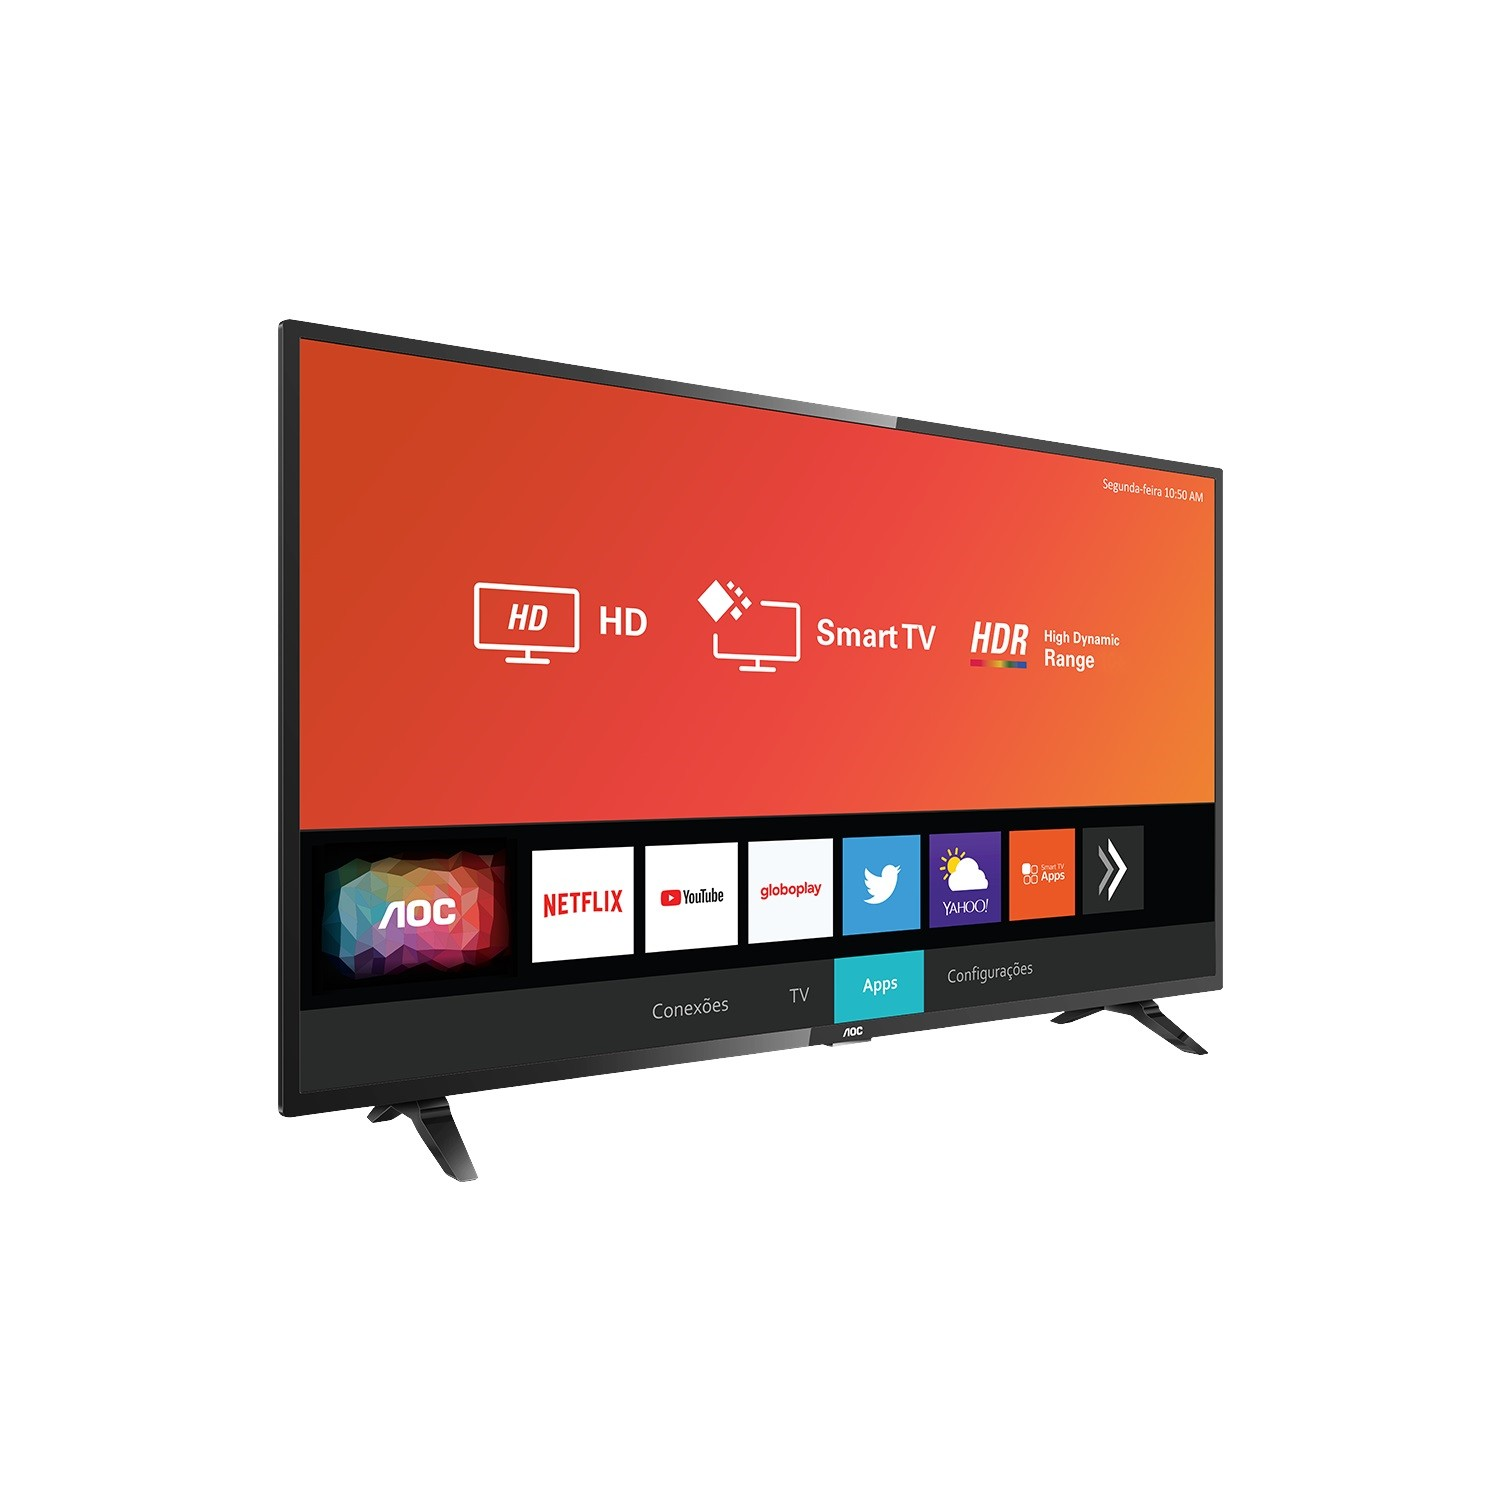 Smart TV LED 32 Aoc HD Wi-Fi 3 HDMI 2 USB - 32S529578G